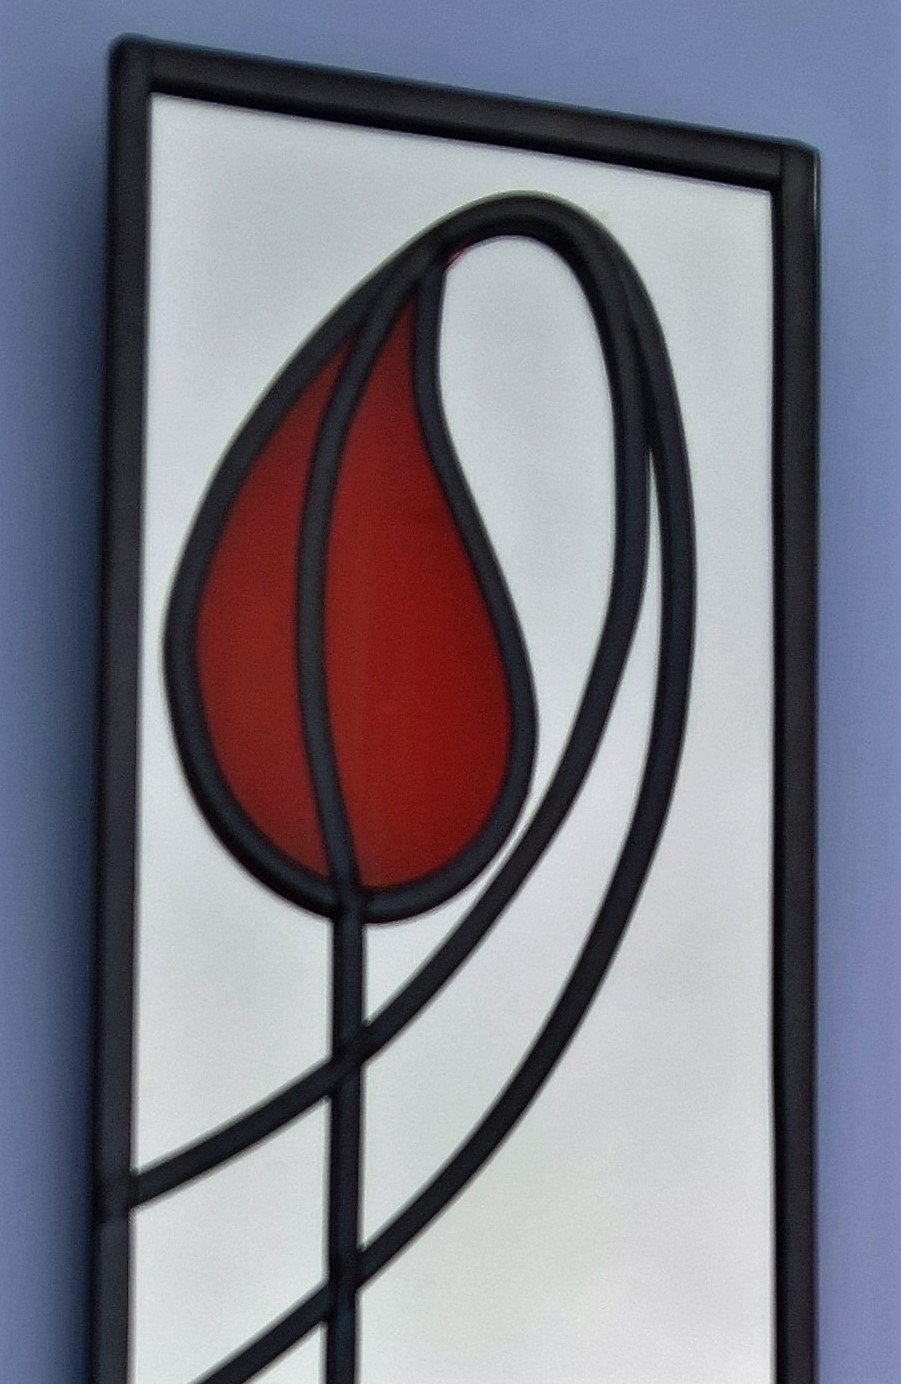 10x40cm Teardrop Tulip Stained Glass effect mirror Handmade in the UK mackintosh